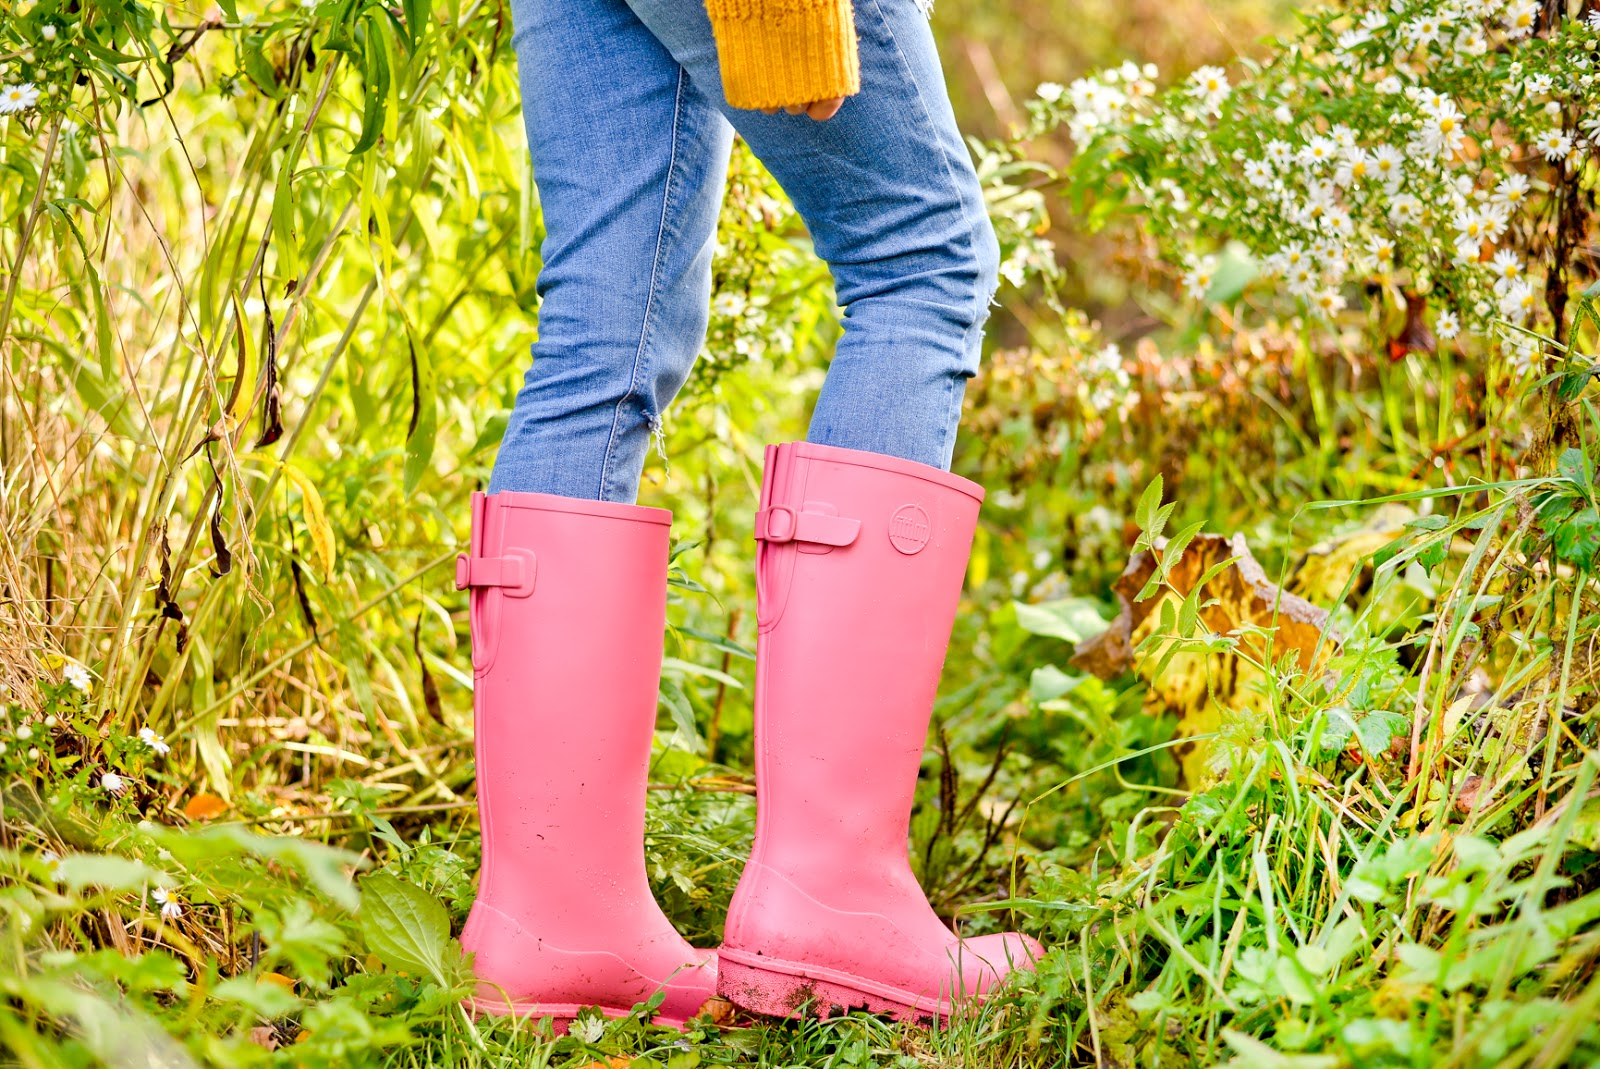 Wonderwelly, wonder wellies, pink wellies, mindfulness outsides, outside wellbeing, outdoors wellbeing